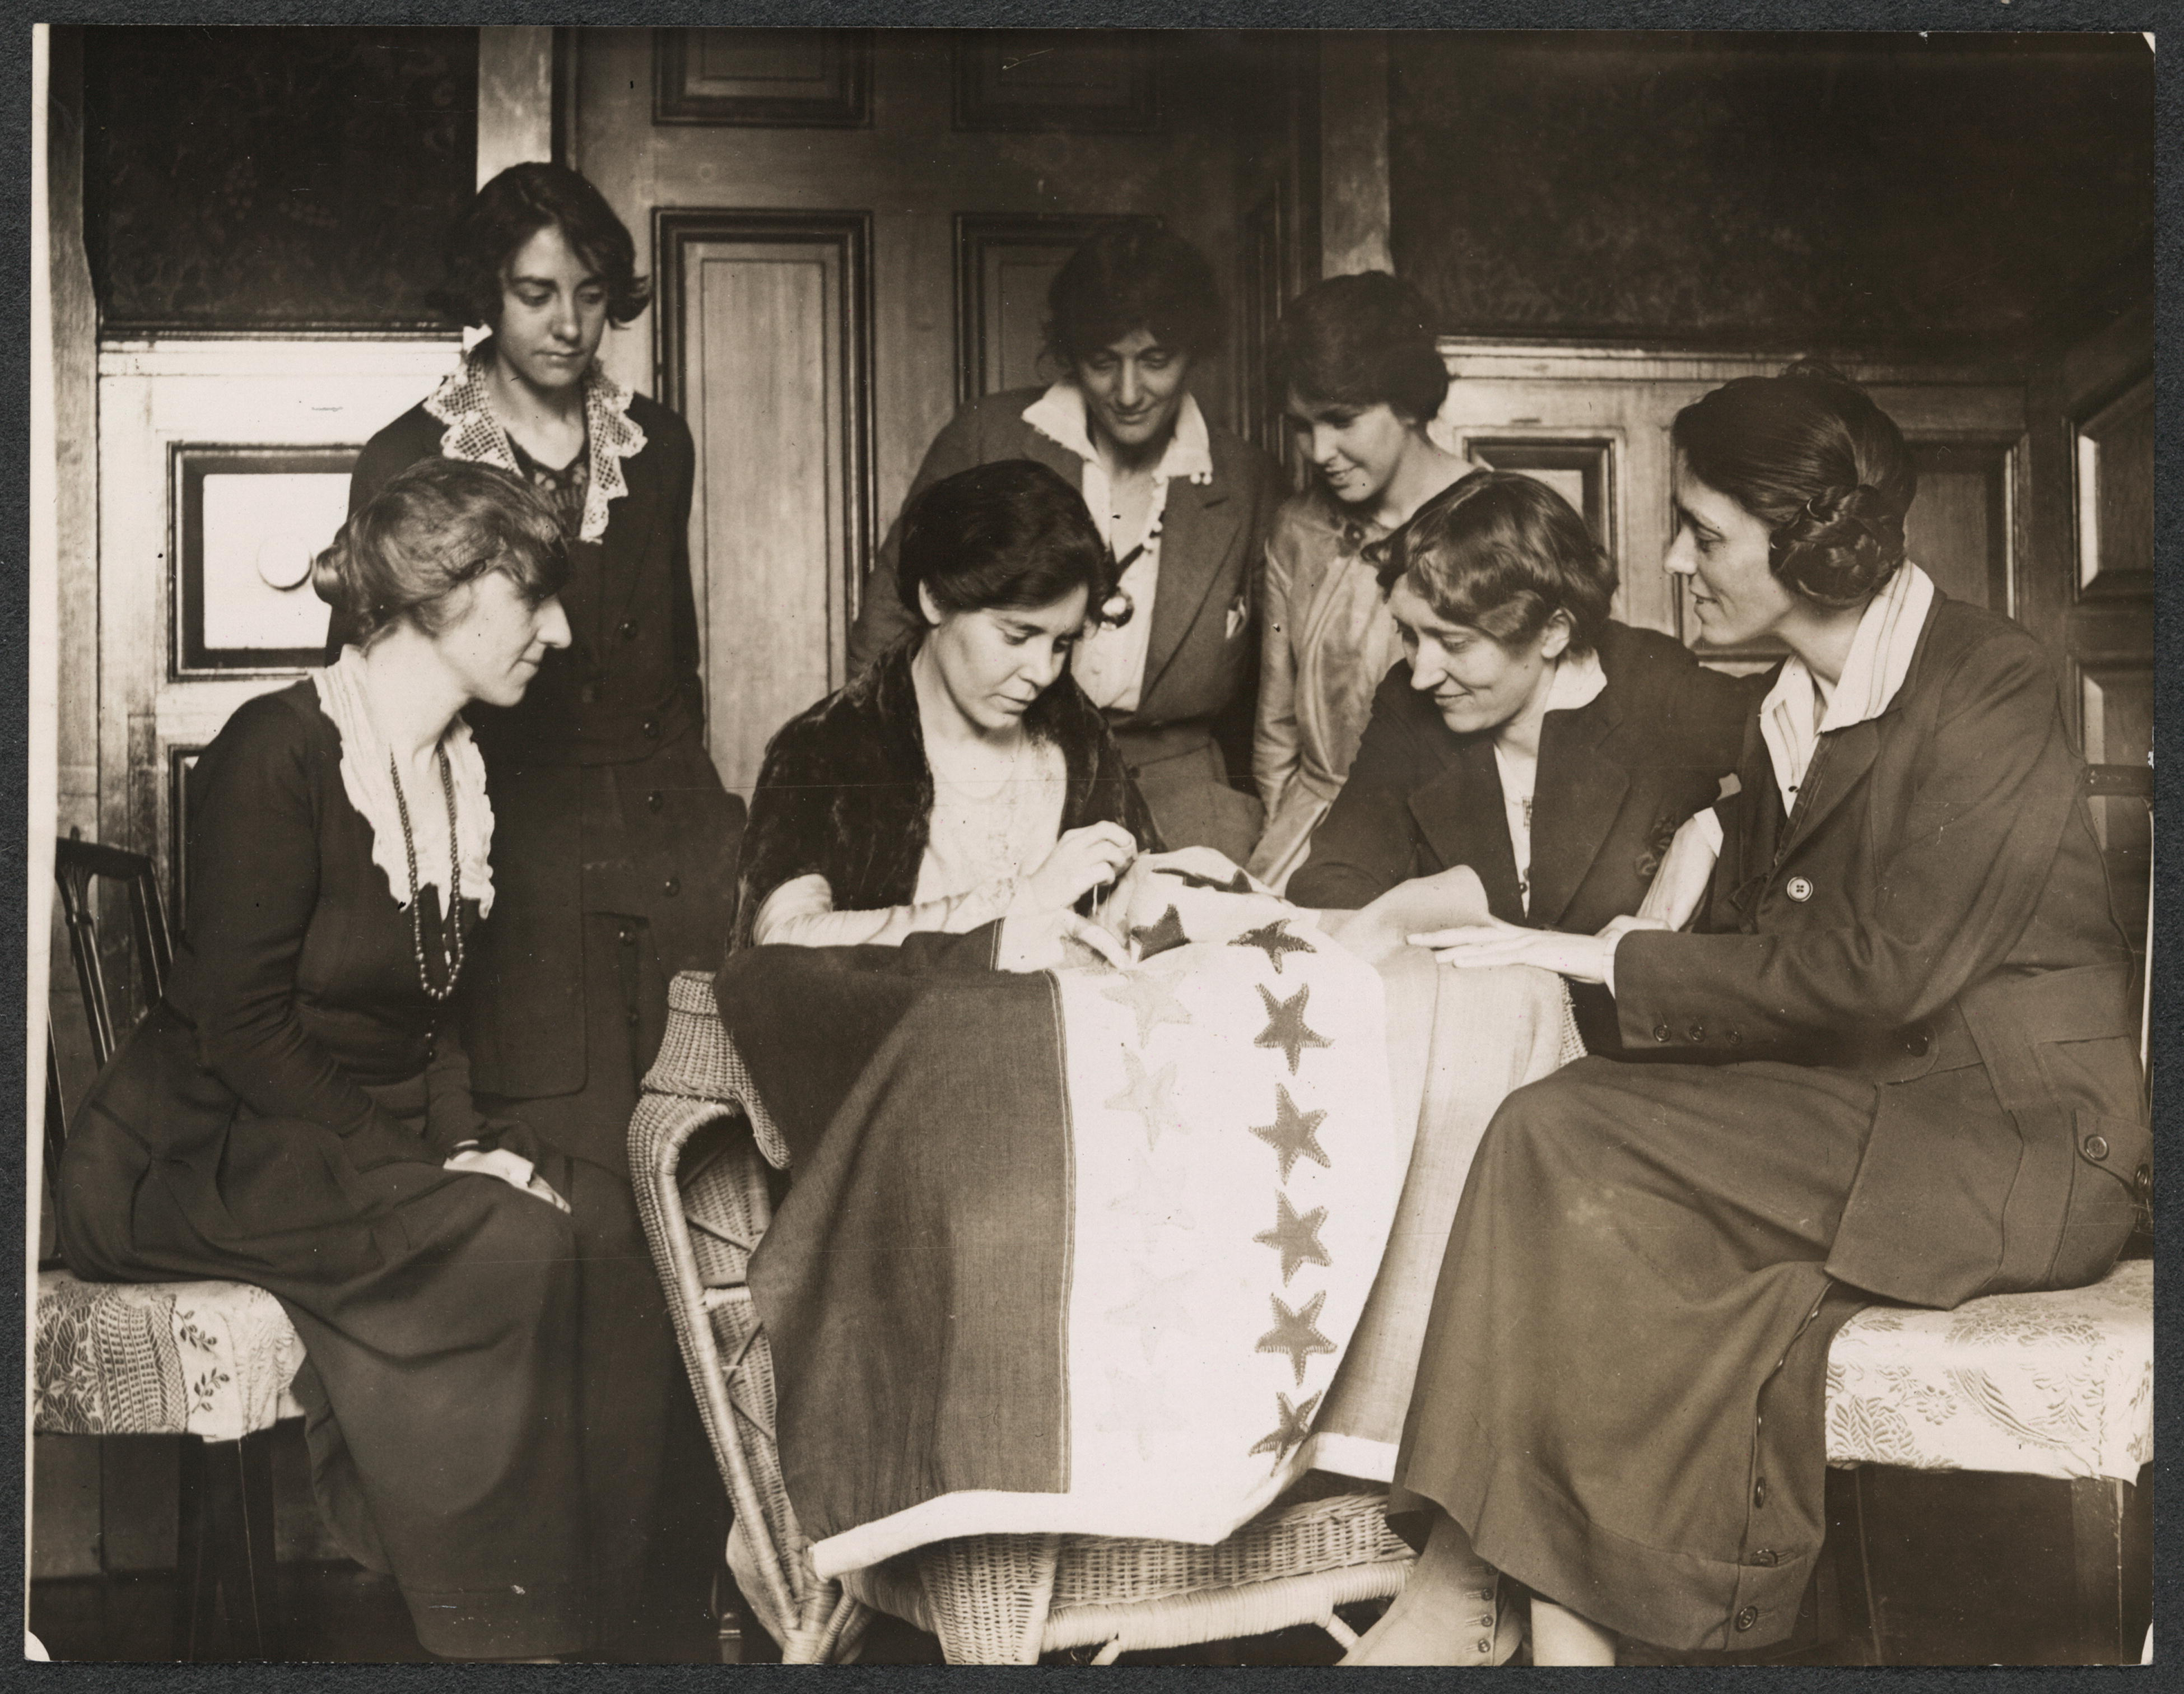 Image of Alice Paul and activists